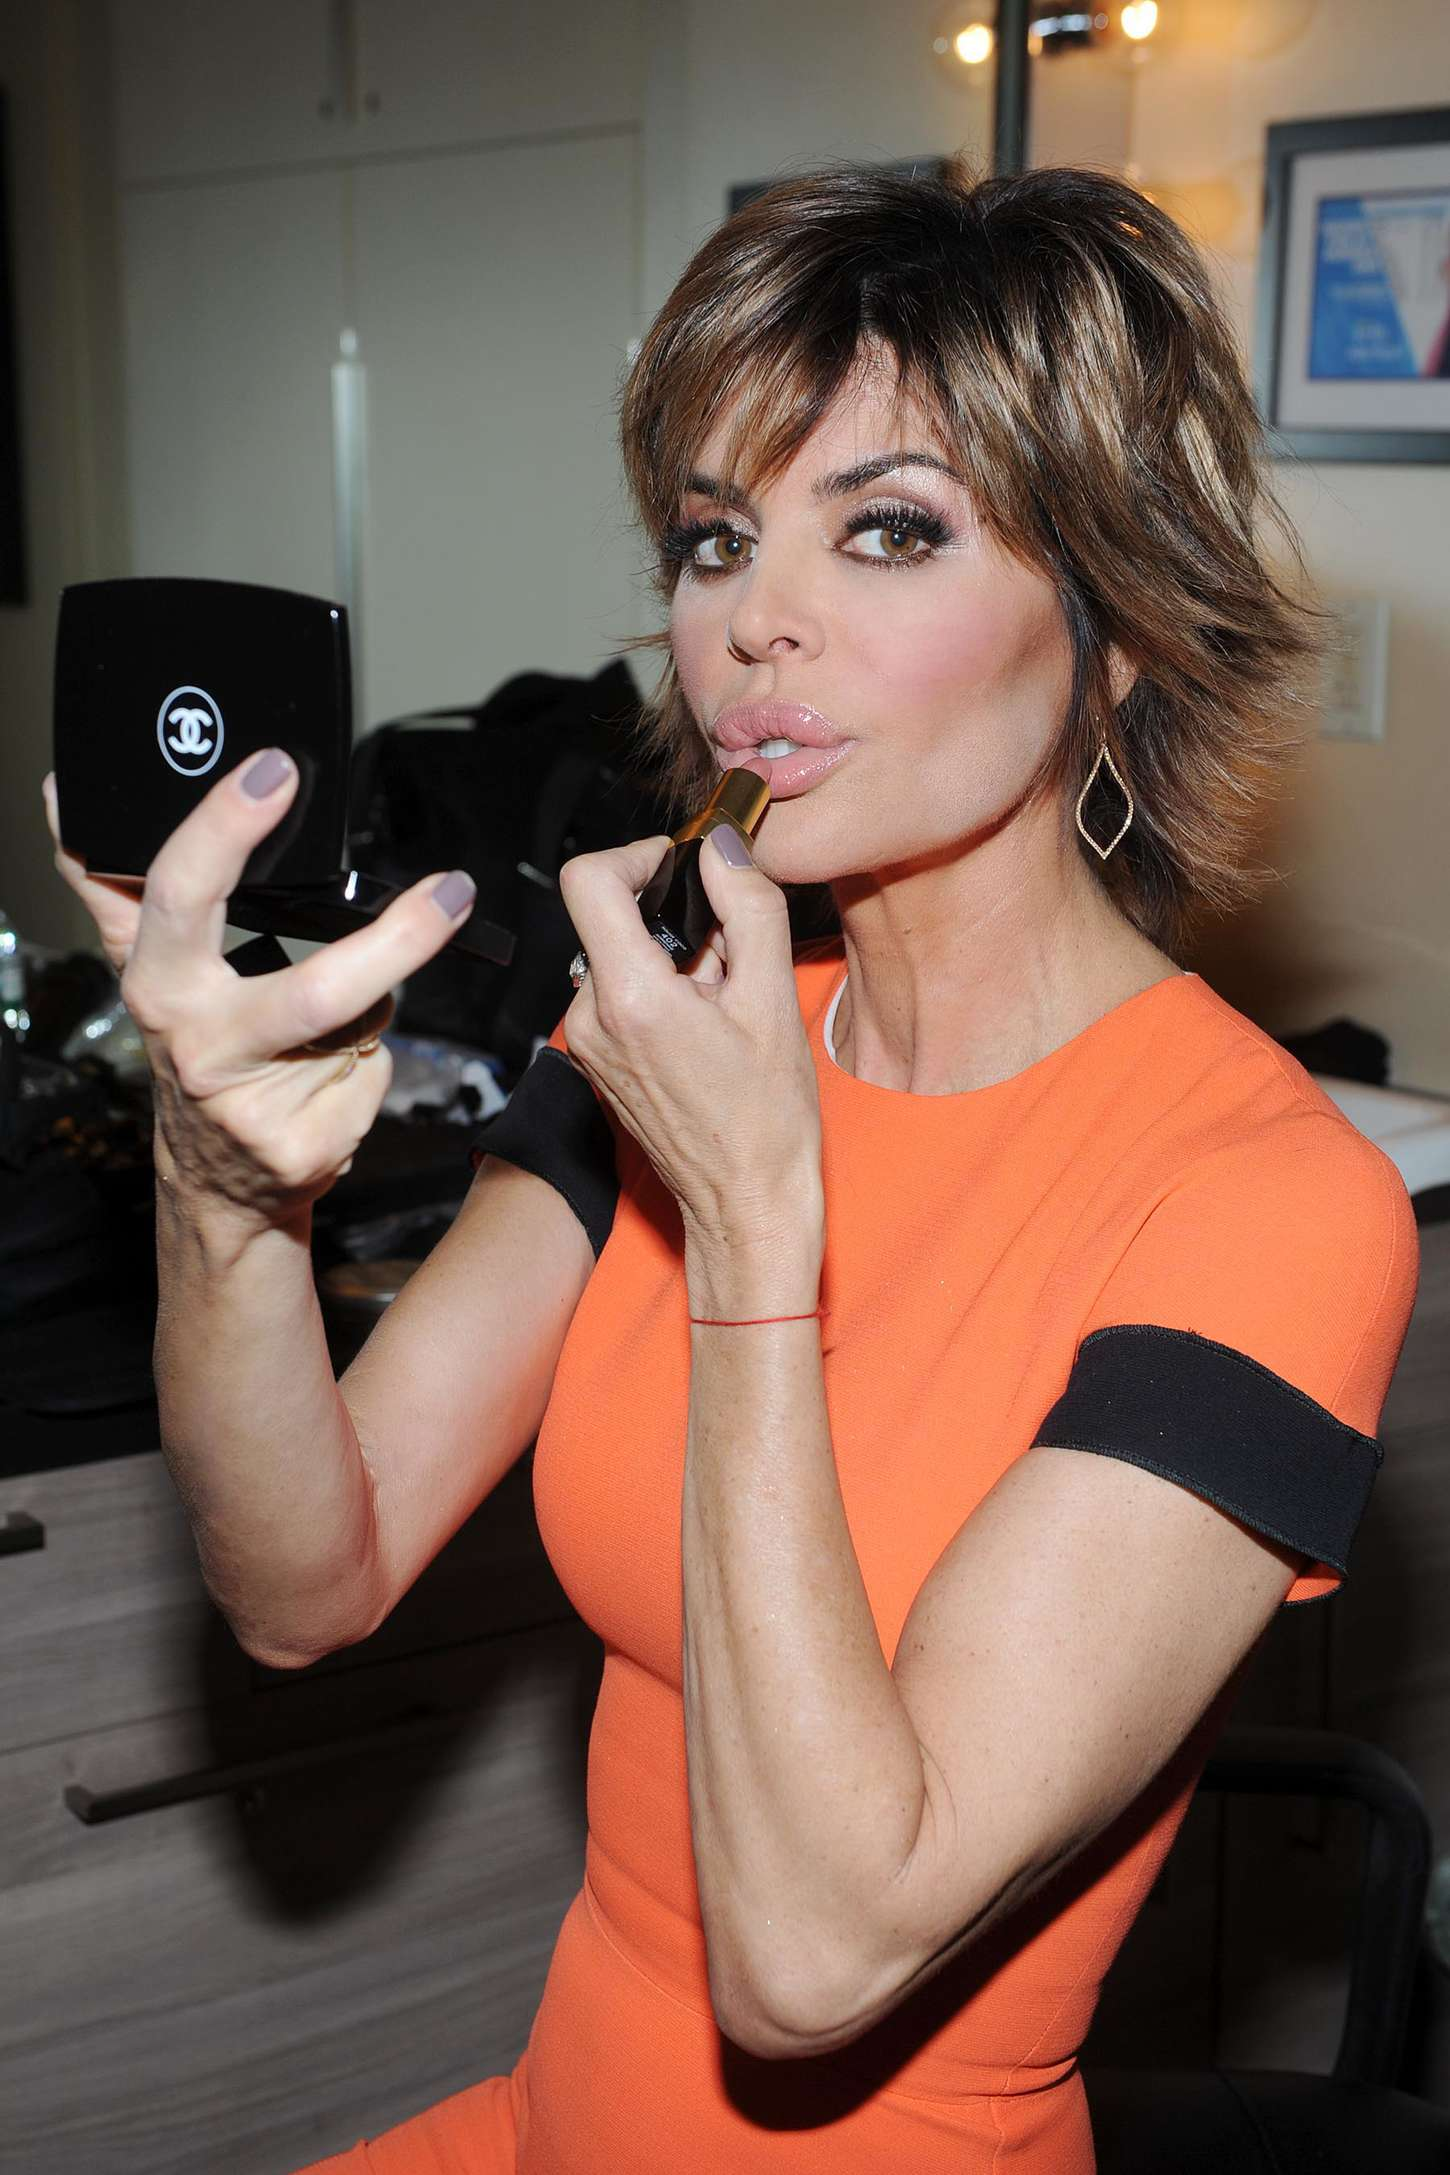 Selfie Lisa Rinna naked (33 foto and video), Topless, Leaked, Twitter, cleavage 2006